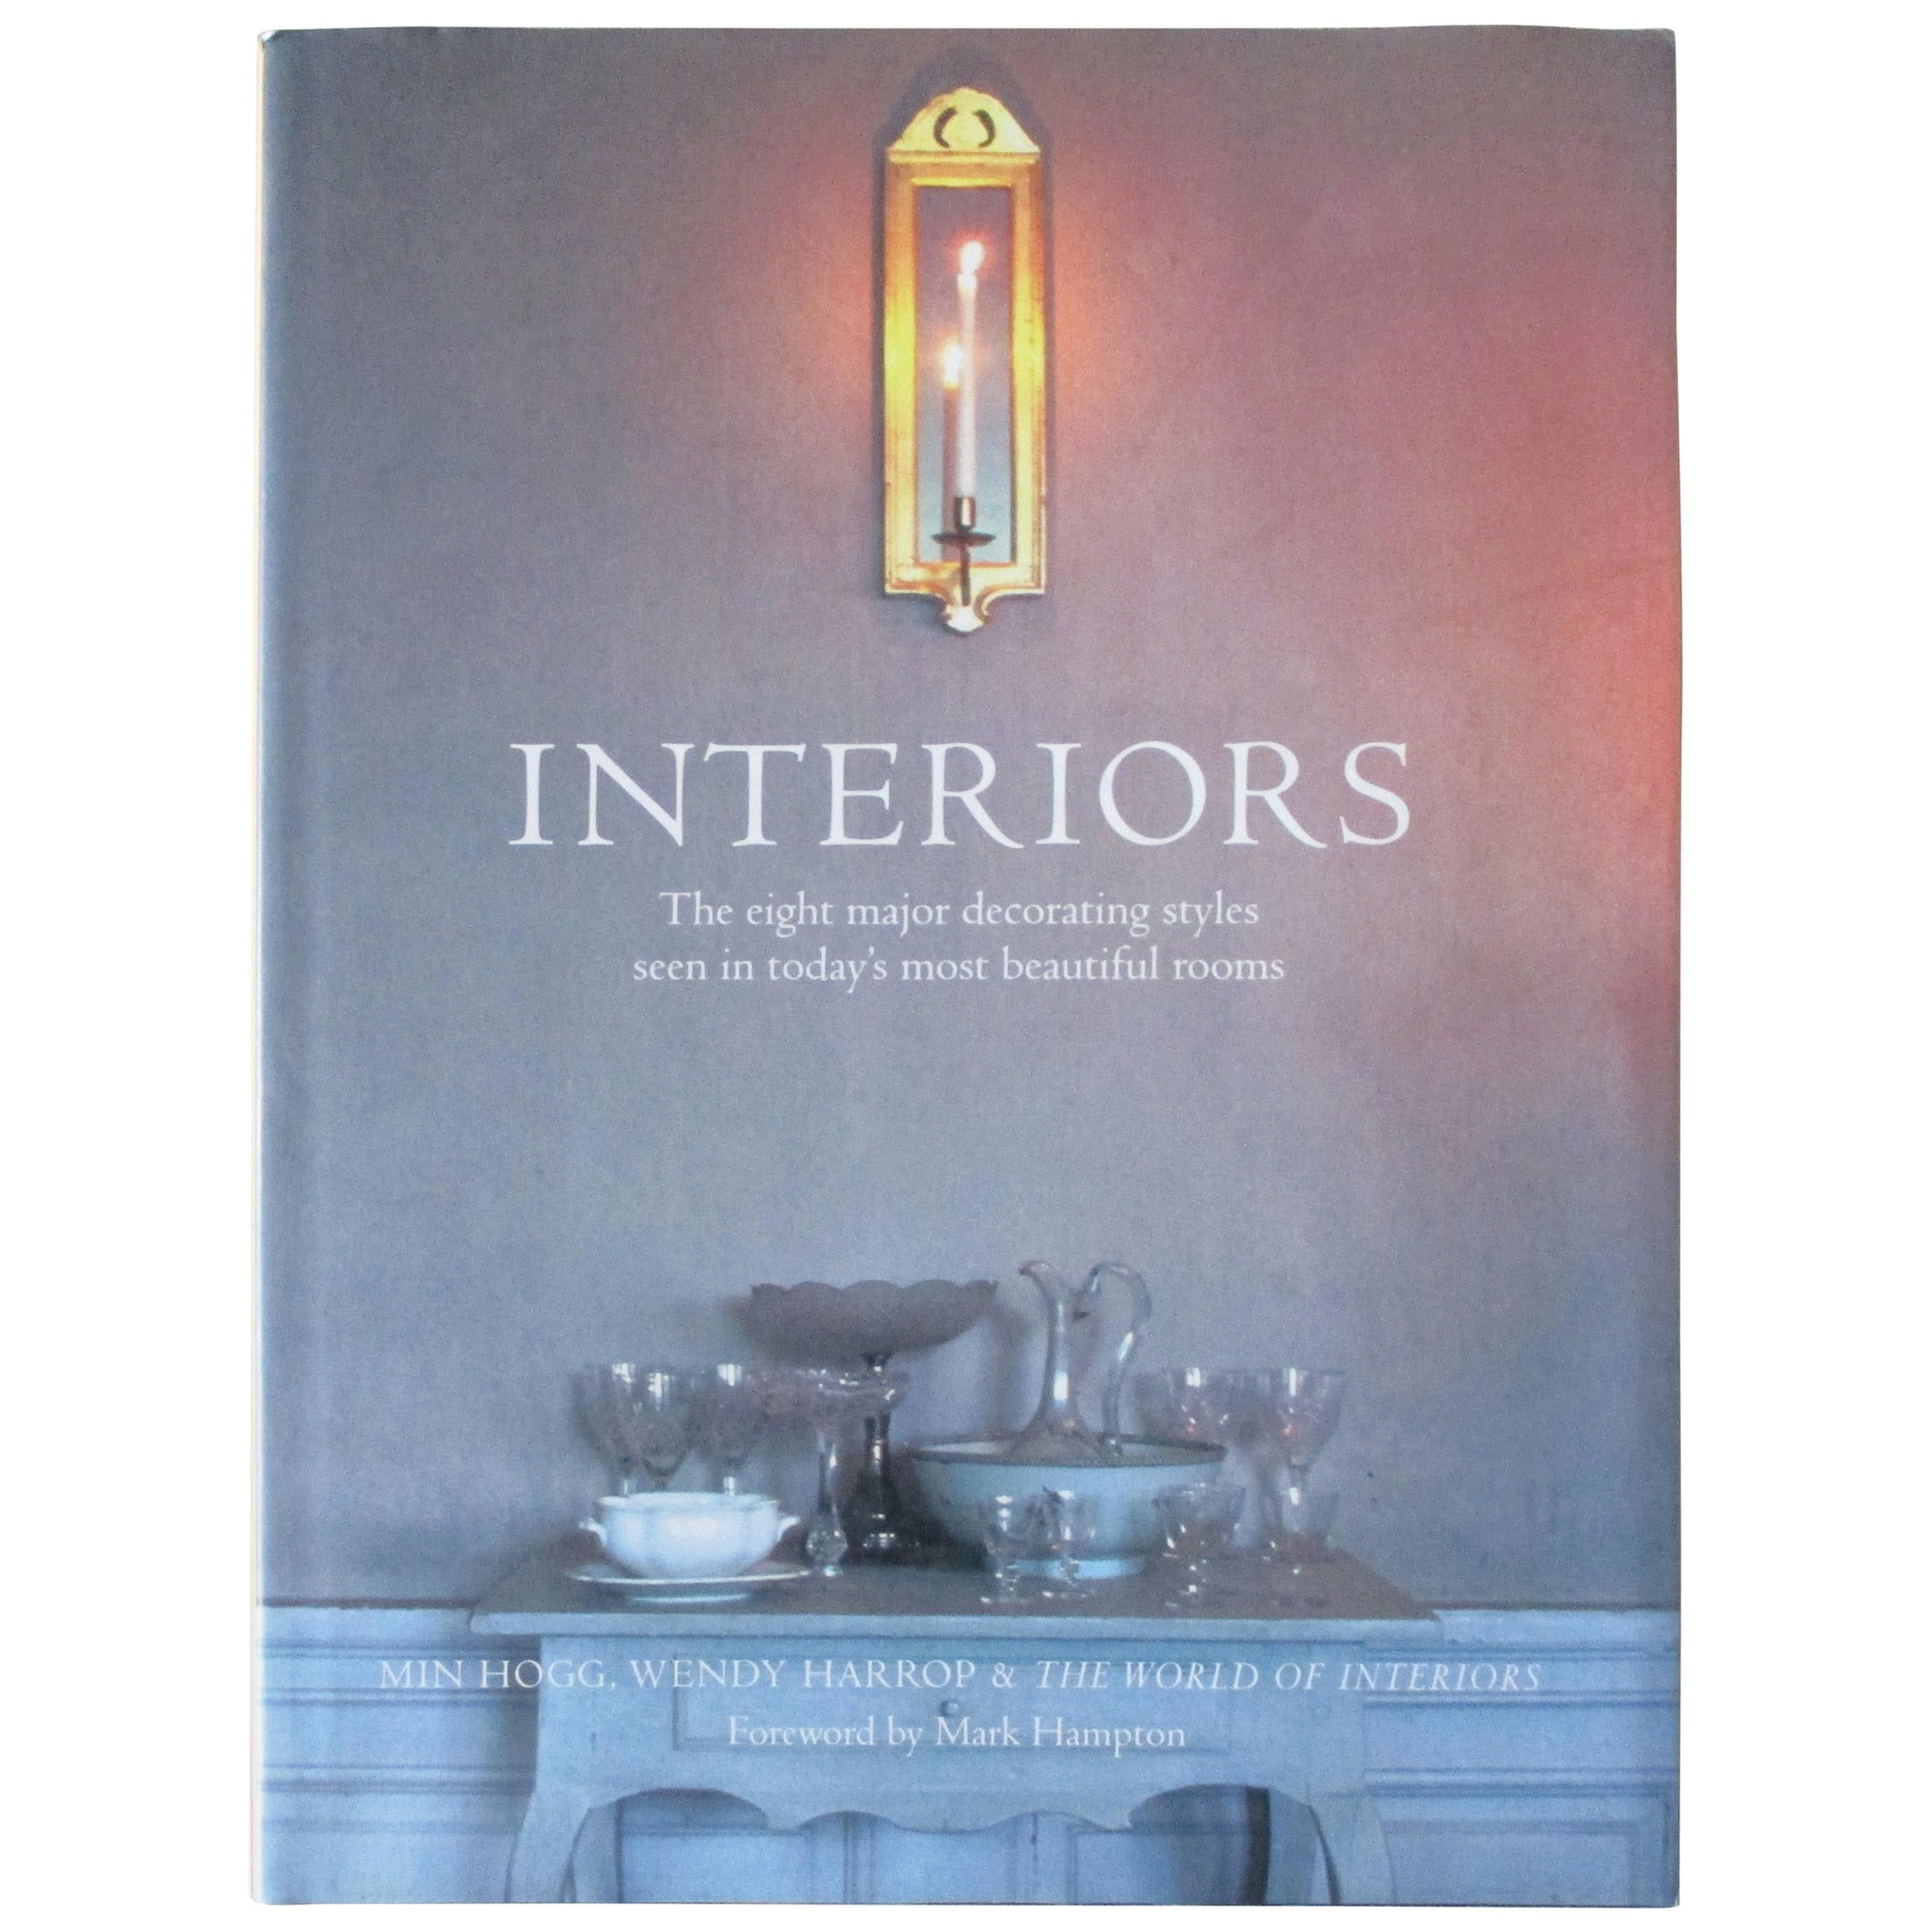 Interiors, the Eight Major Decorating Styles Seen in Today's Most Beautiful Room